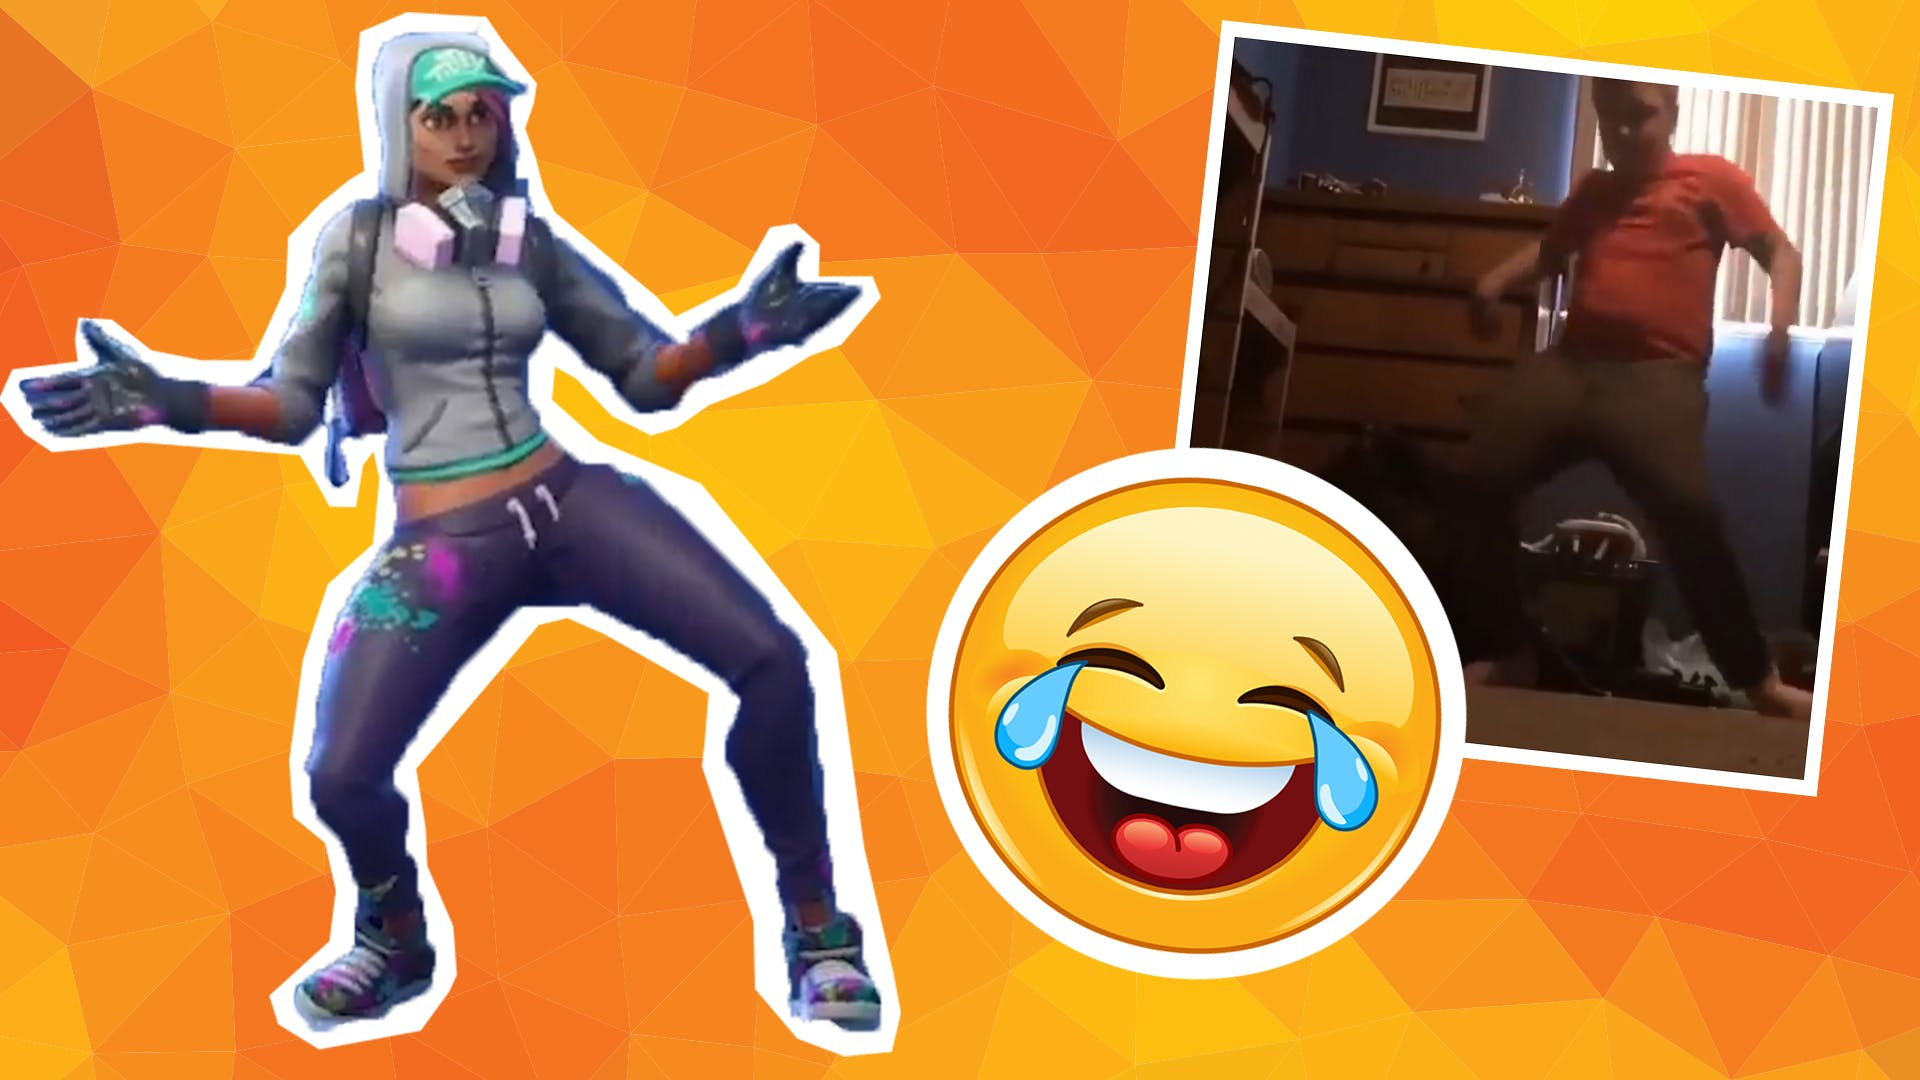 Fortnite Dances In Real Life Fornite Dance Moves On Beano Com